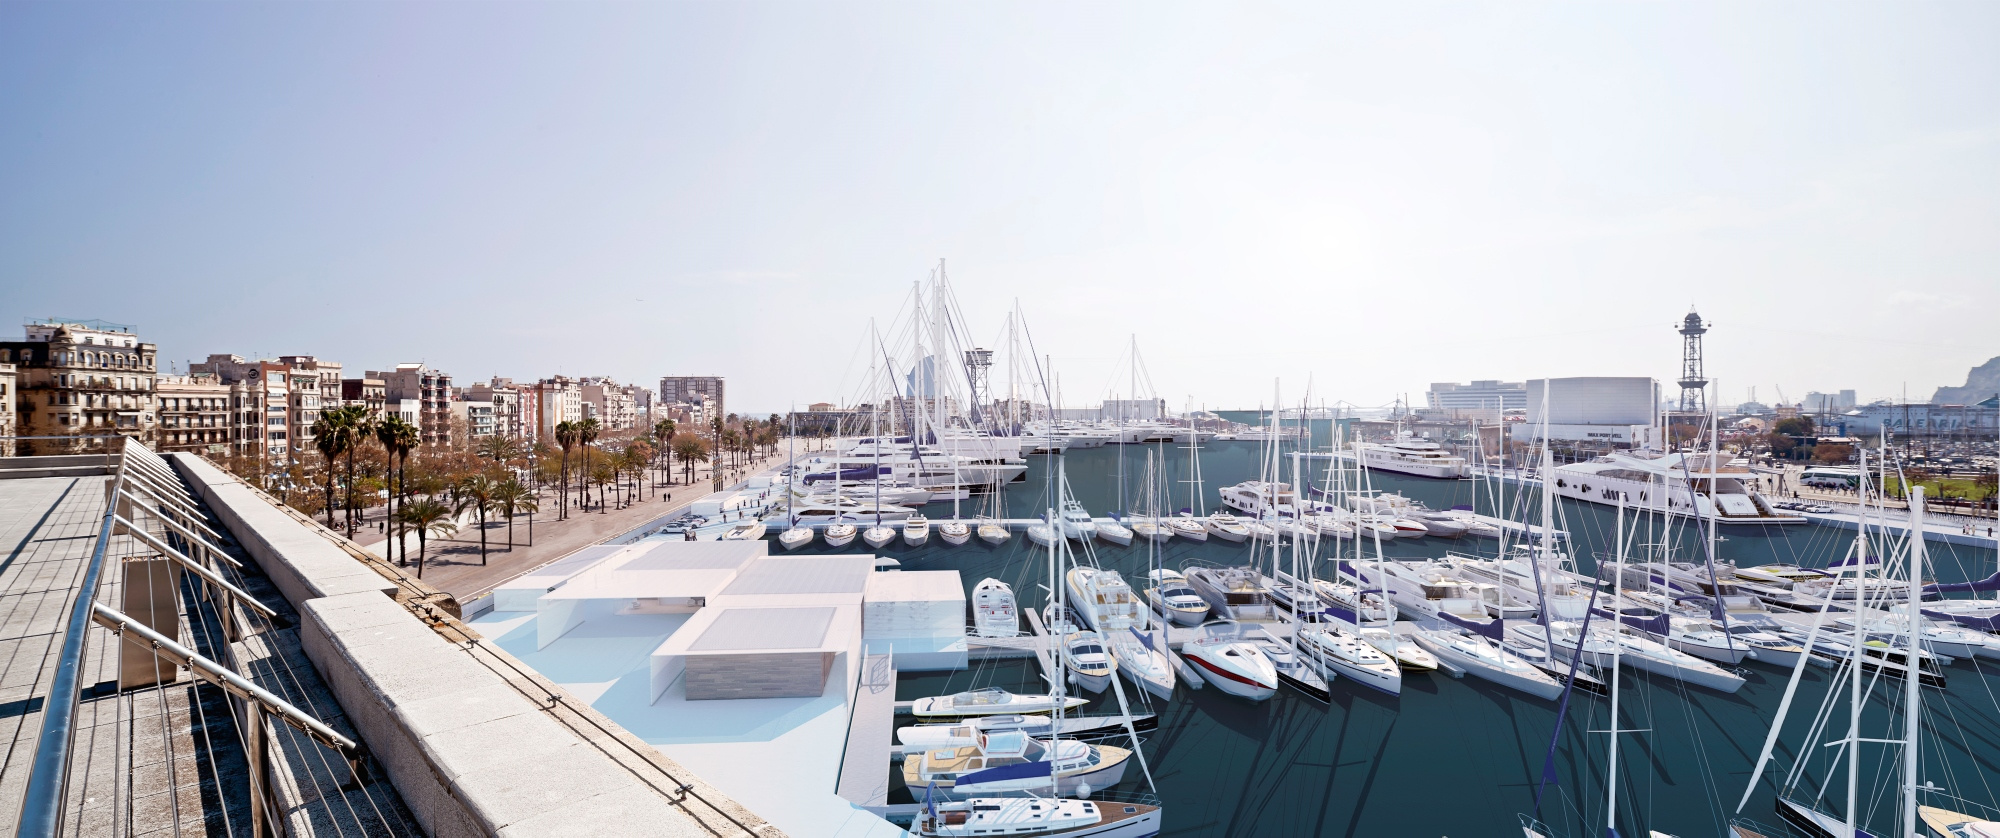 Oneocean club in barcelona to launch in november 2014 for Oneocean club barcelona